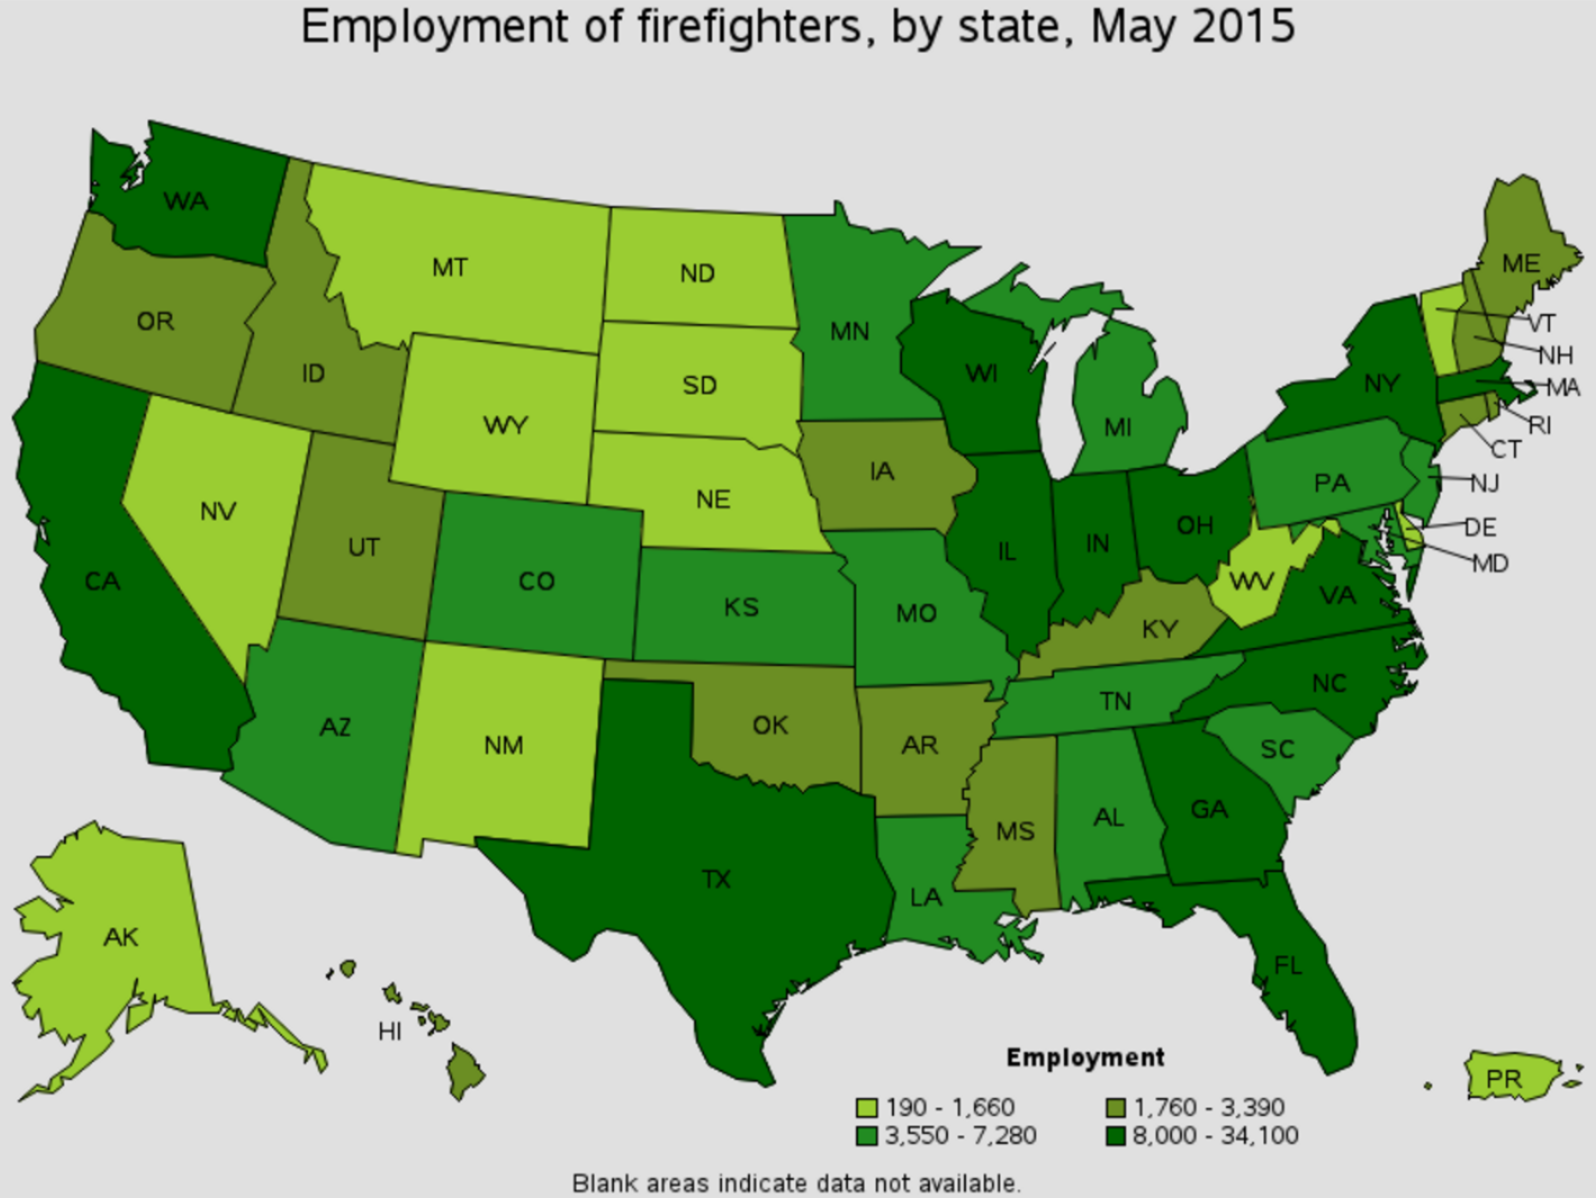 firefighter job outlook by state Mc Keesport Pennsylvania